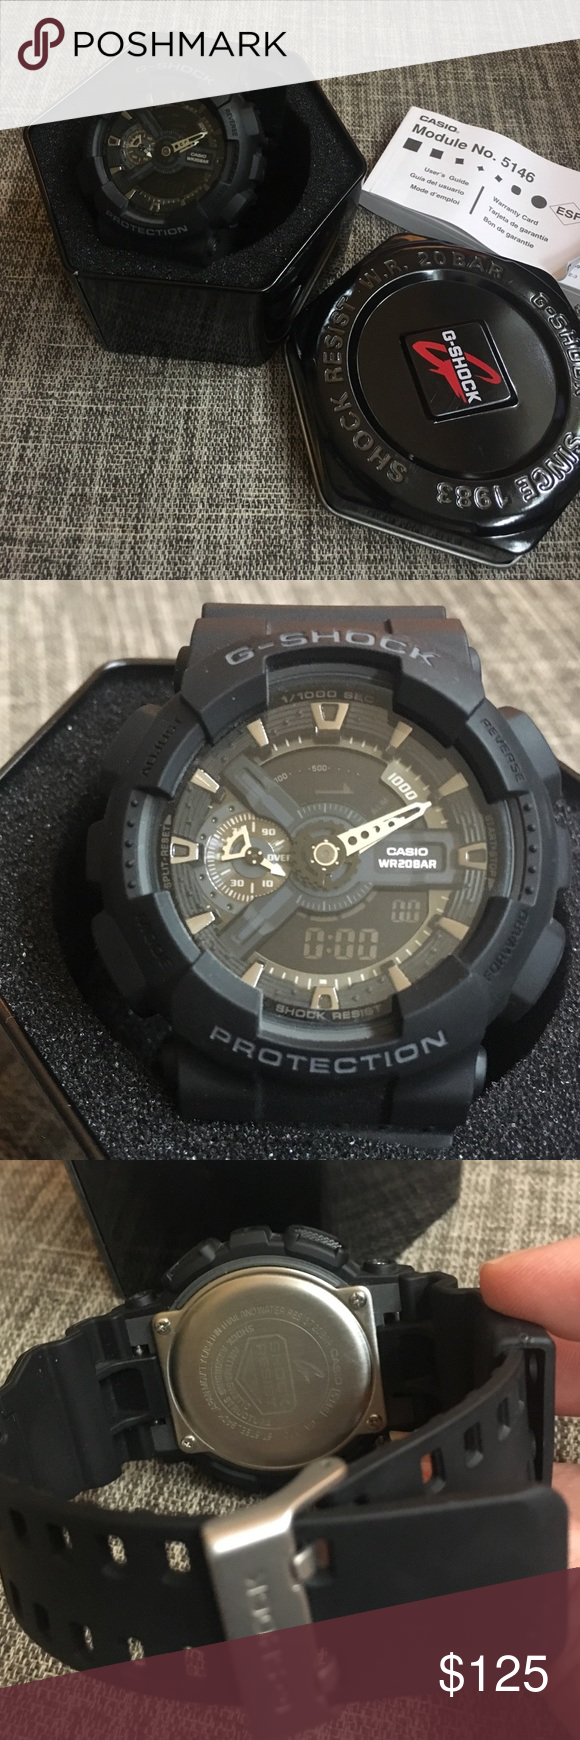 Watch - Casio G-Shock Casio GShock WR20 Bar like new - never worn.  Purchased for my son who did not like the size and style. With original  packaging and ...